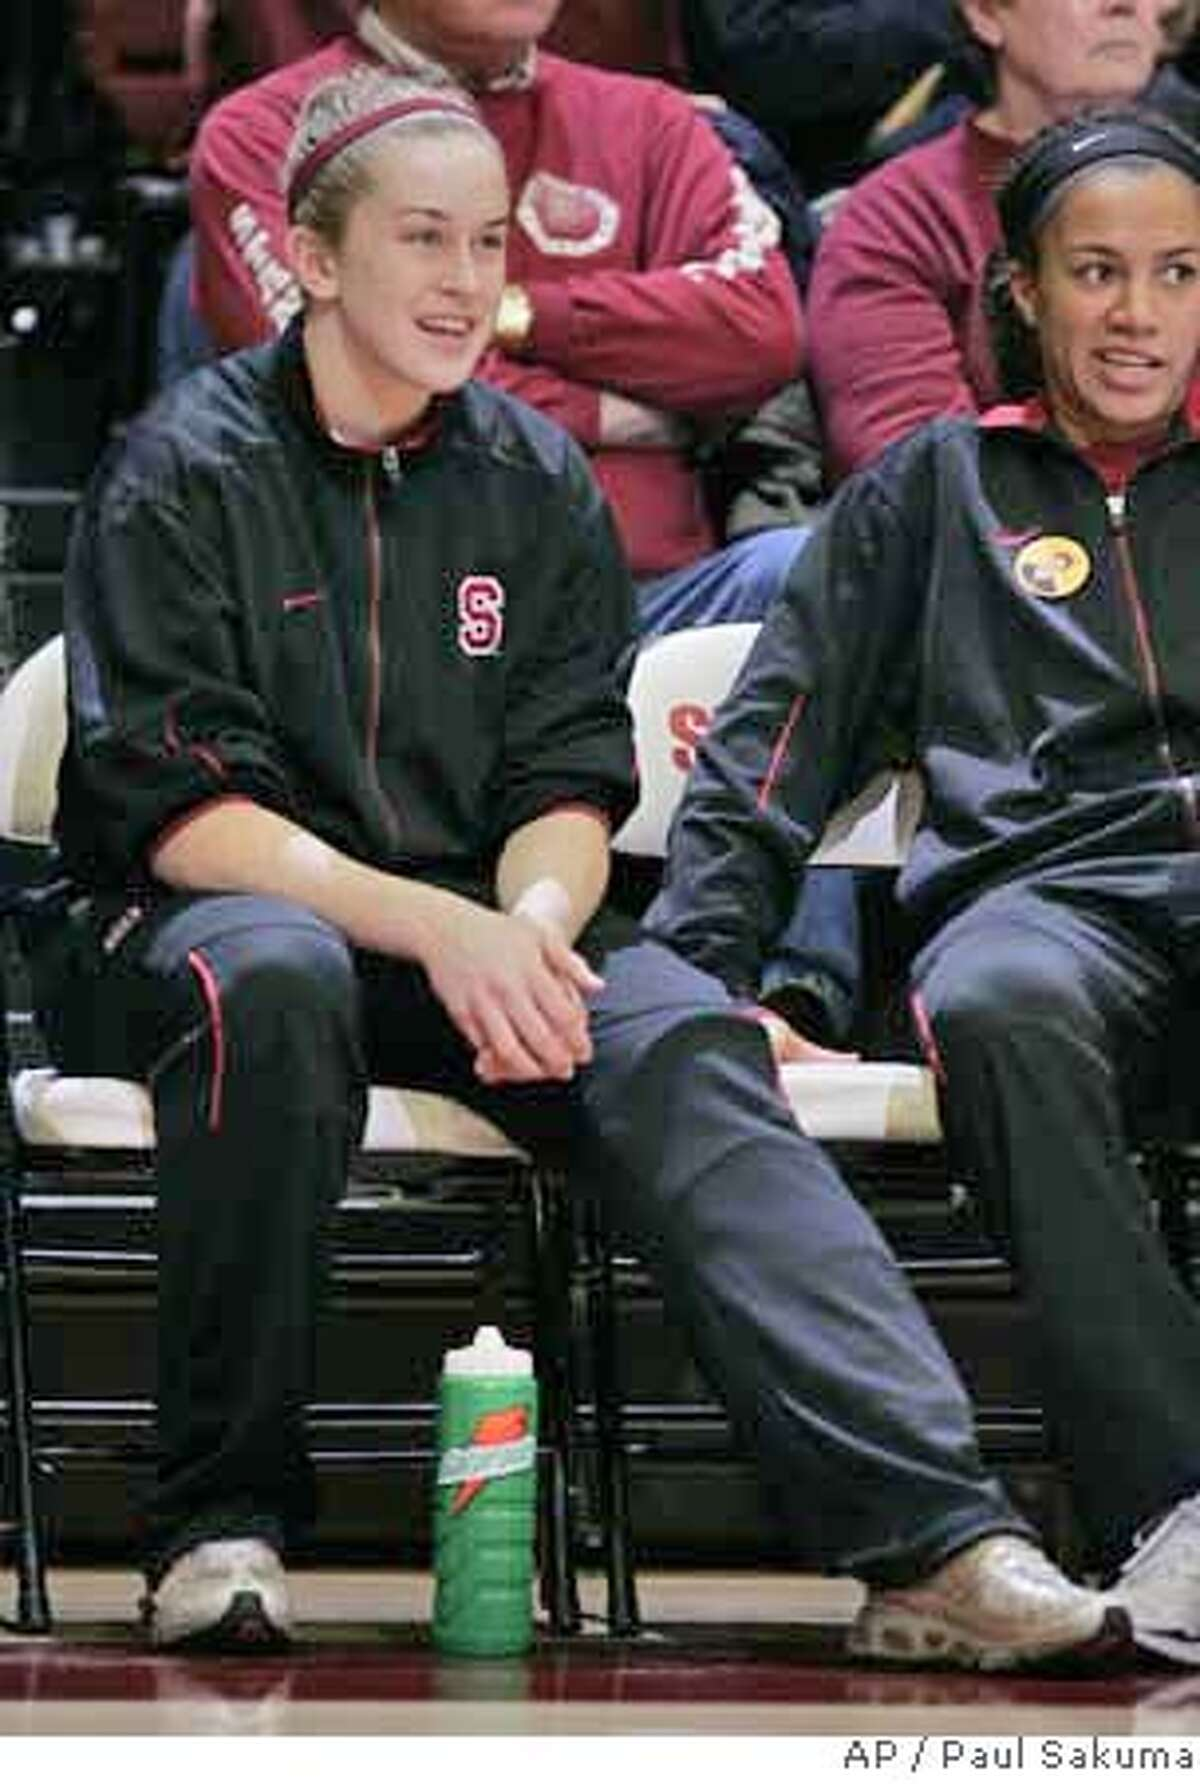 Injured Stanford guard JJ Hones, left, and guard Rosalyn Gold-Onwude, right, sit on the bench in the first half against Washington State during their NCAA basketball game in Stanford, Calif., Thursday, Feb. 8, 2007. Hones injured her knee in the last game and is out for the rest of the season. Gold-Onwude has not played all season. (AP Photo/Paul Sakuma)